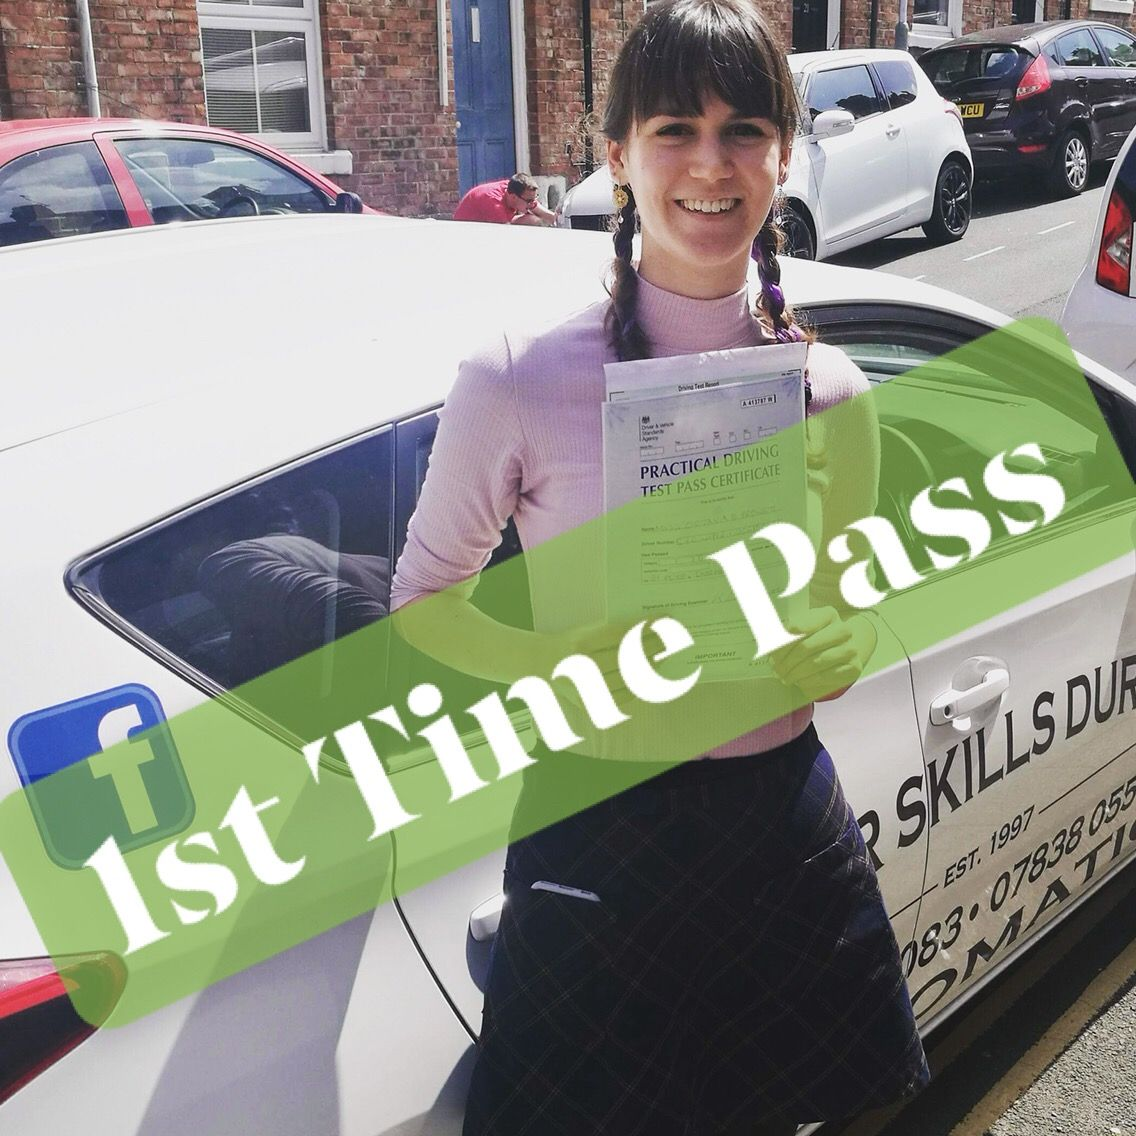 Octavia passed 1st Time after a 25 hour Automatic ...